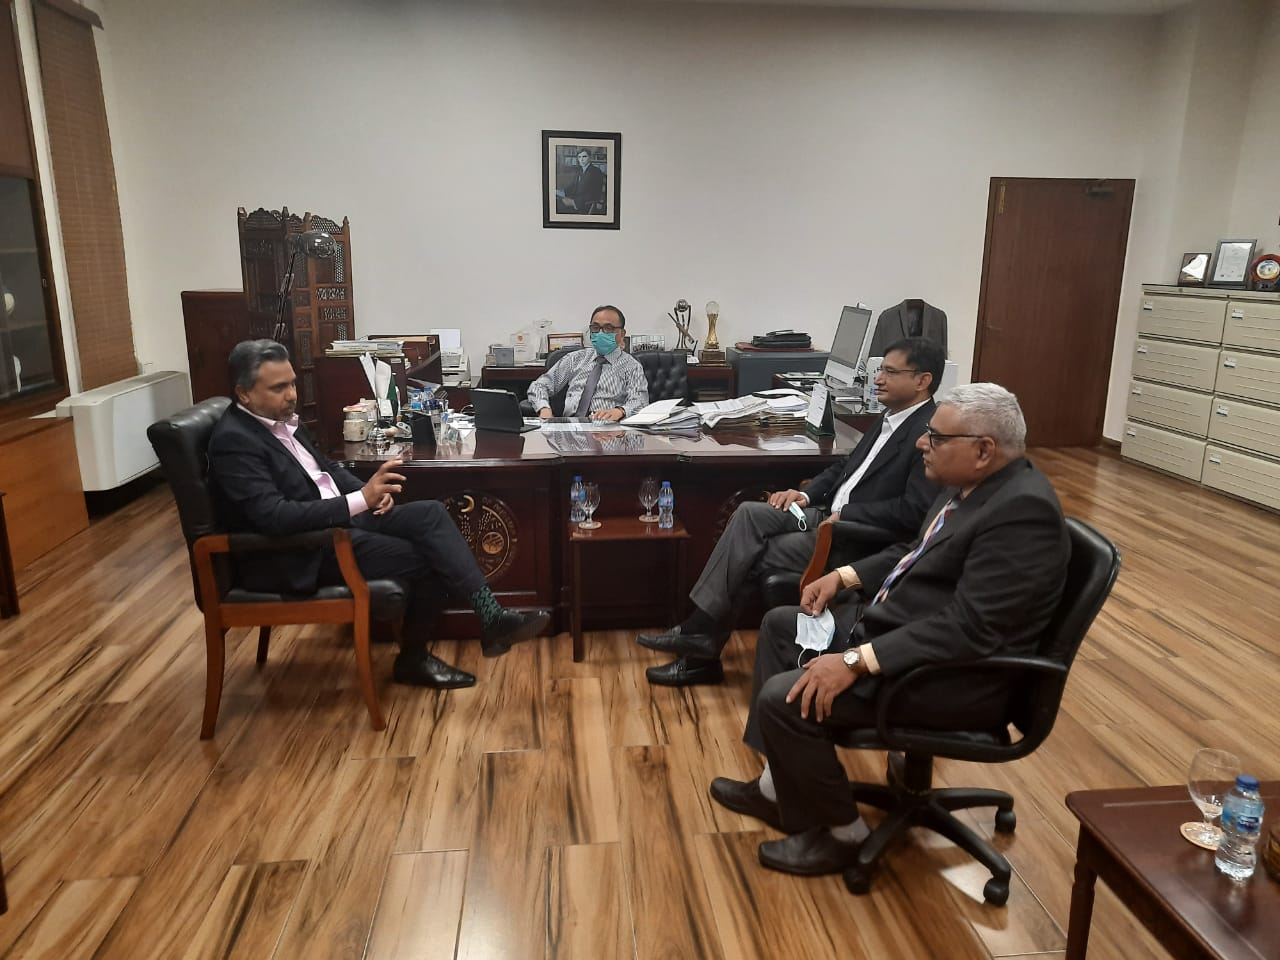 Mr Qaisar Iqbal Baryar, called on Mr. Muhammad Ashraf Khan, MD Banking Services Corporation, State Bank of Pakistan and his team for discussion on issue of mutual interest.